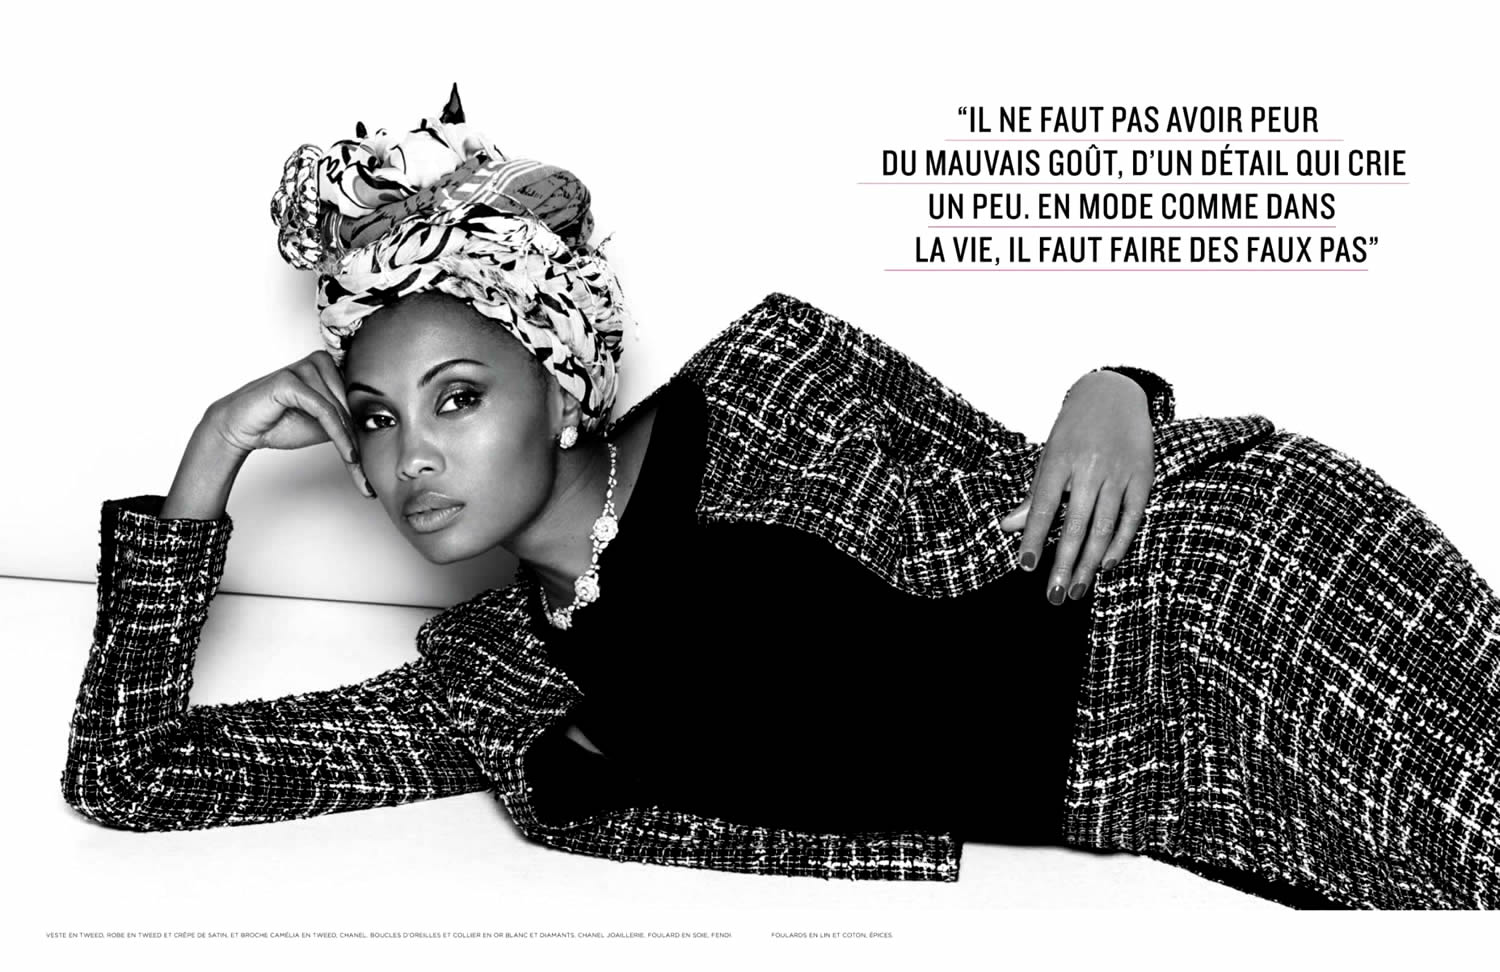 Imany-By-Benni-Valsson-For-Be-Magazine-April-2014-Issue-FAB-Magazine-9